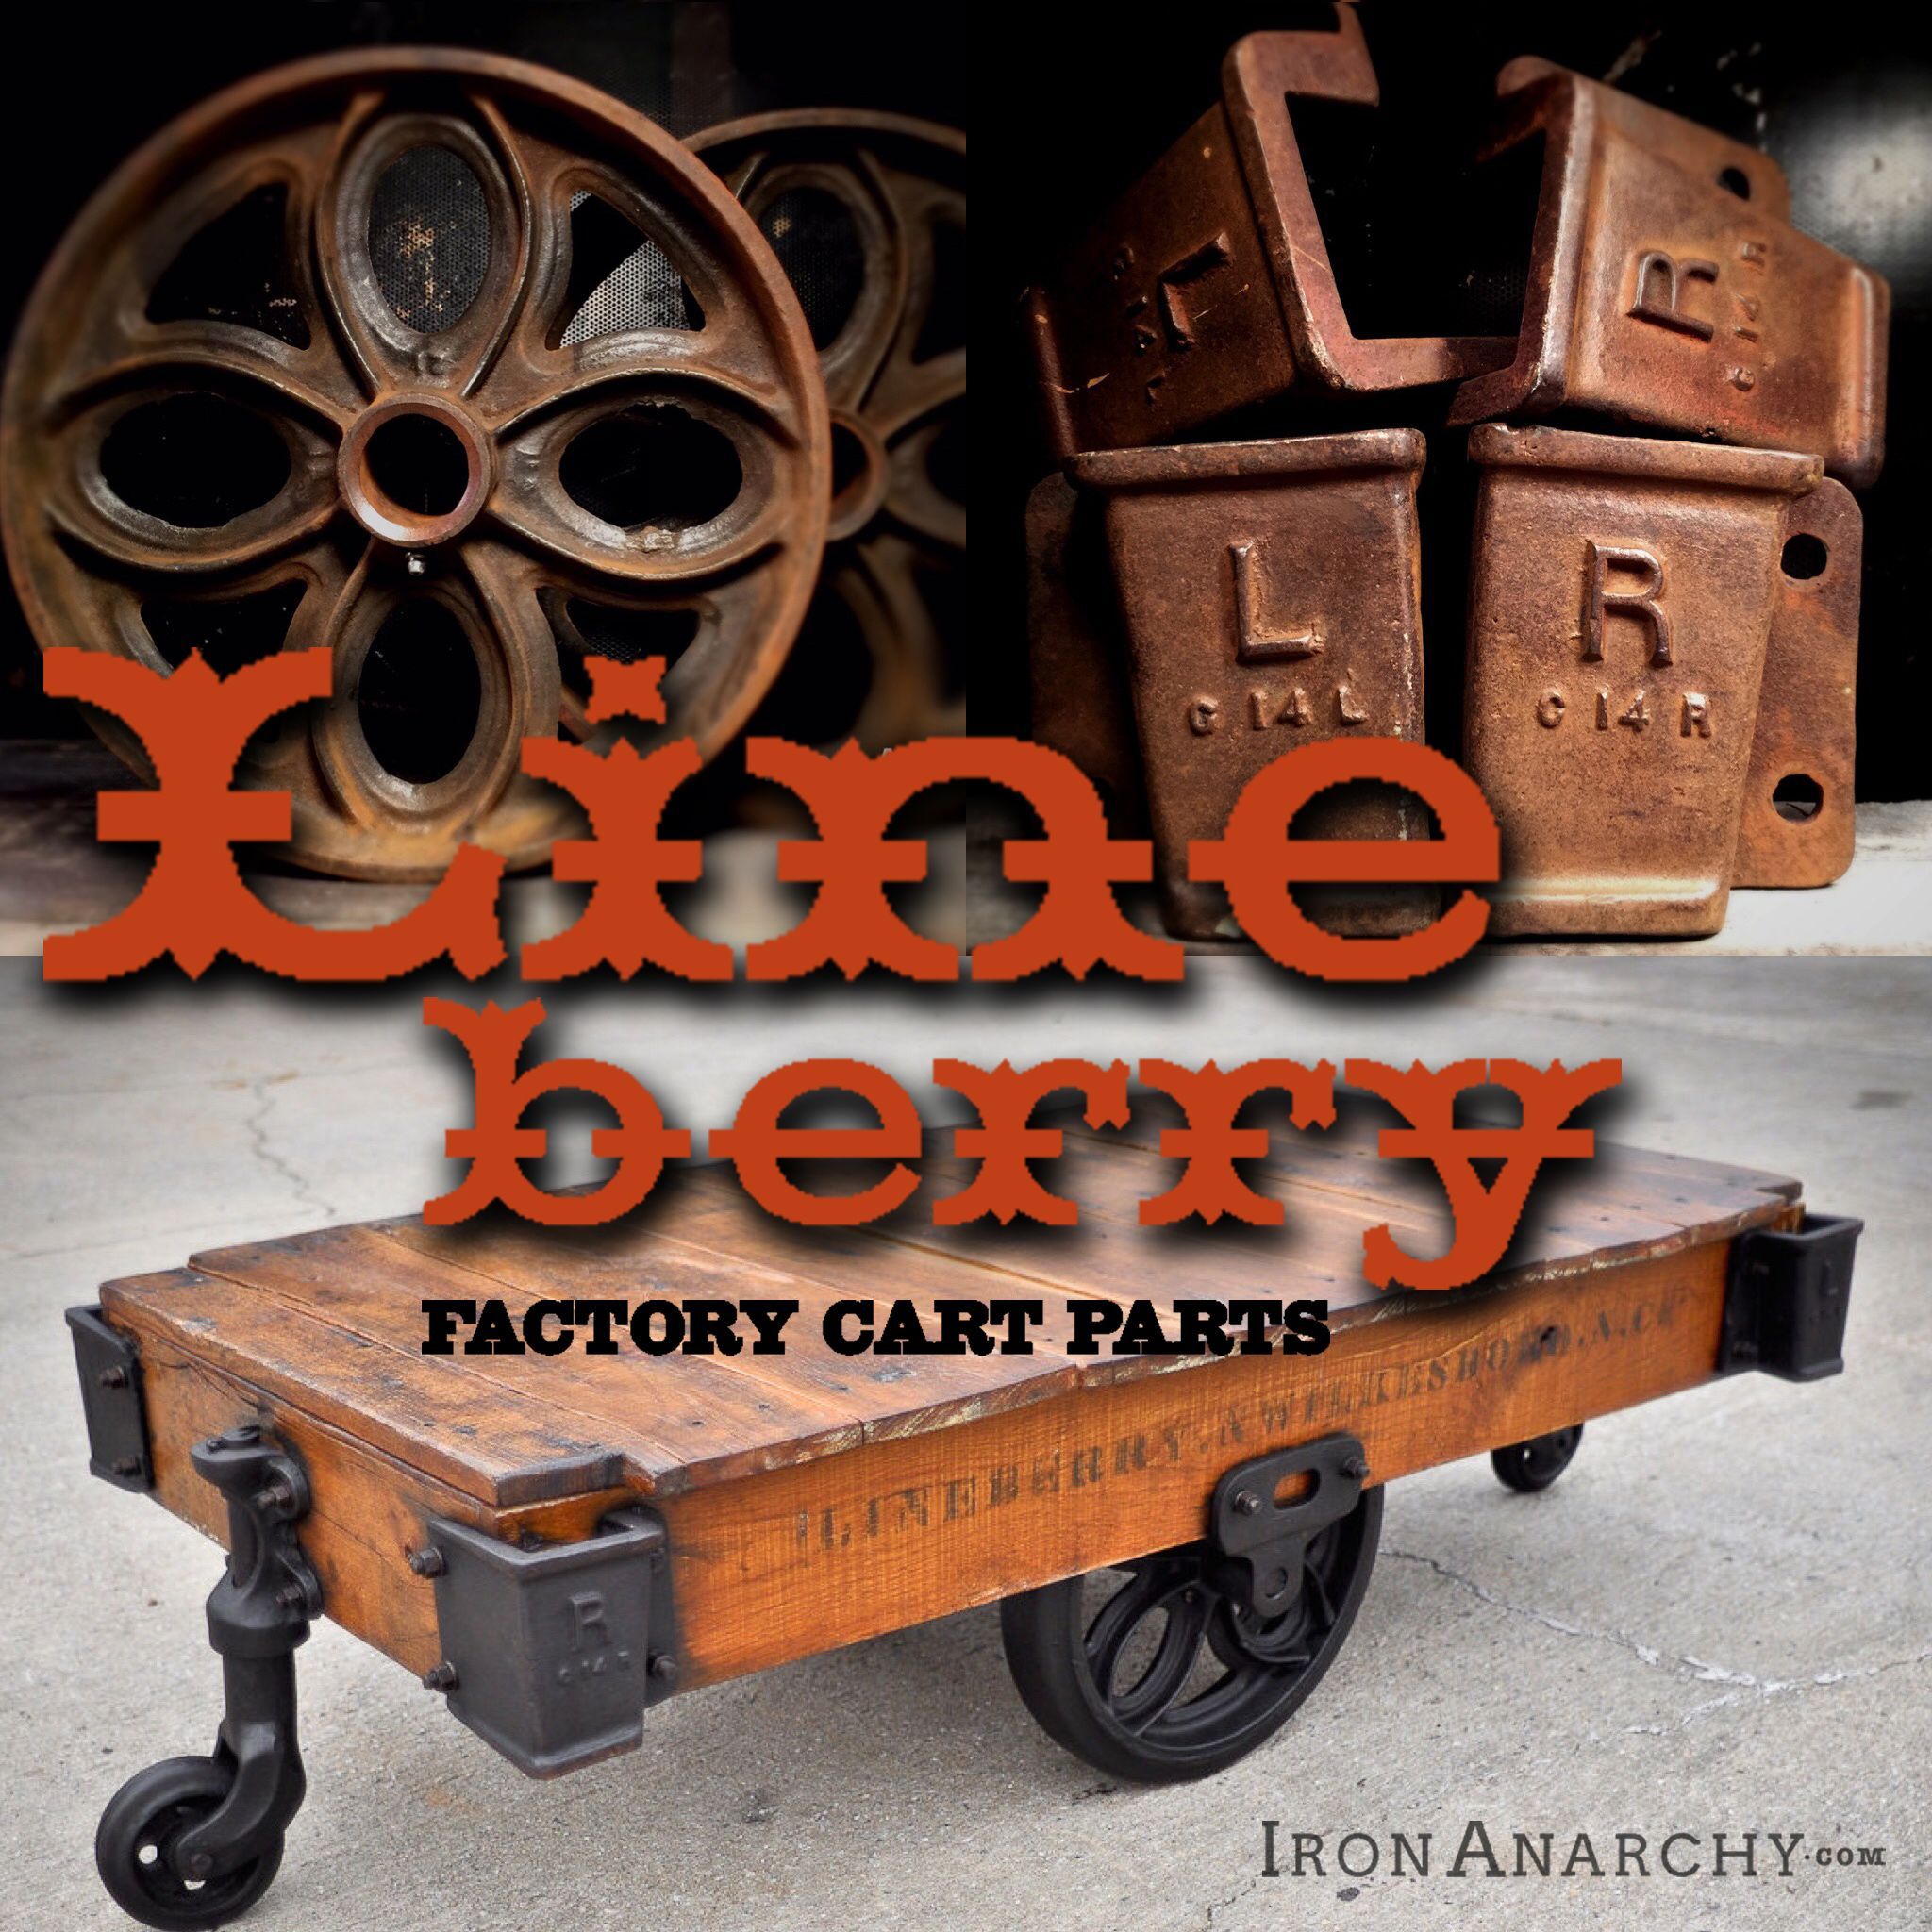 Industrial Rustic Factory Cart Coffee Table: Antique Industrial Casters